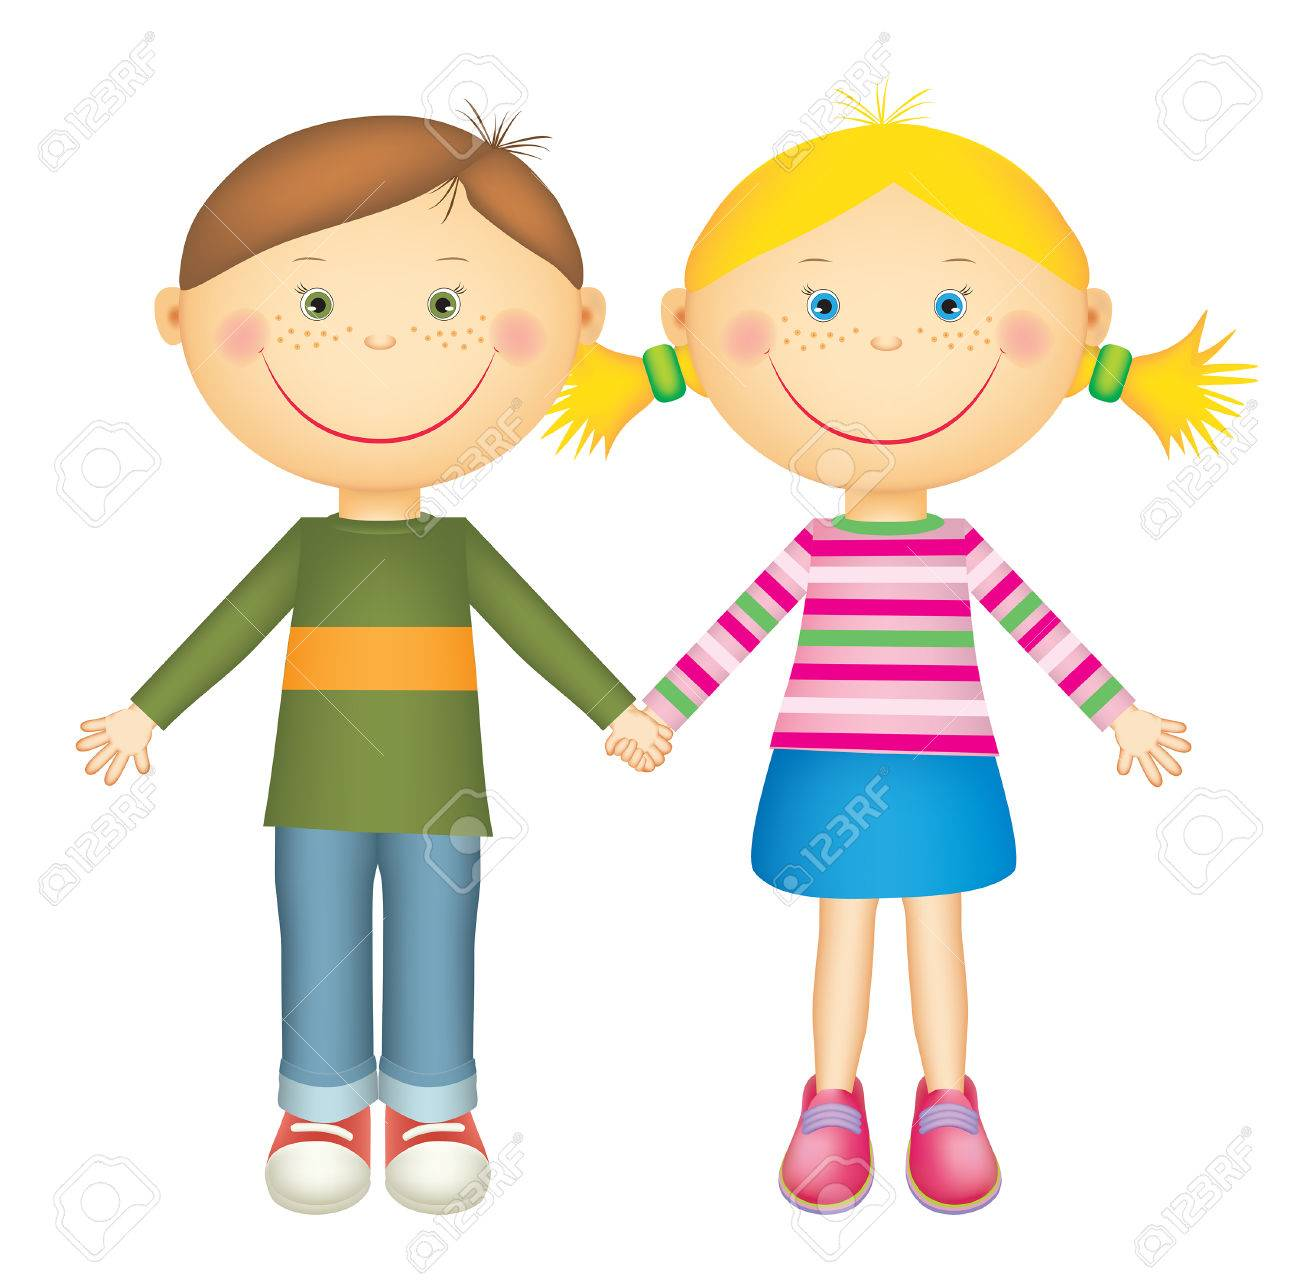 happy little boy and girl holding hands and smiling isolated rh 123rf com Black and White Clip Art Boy and Girl Holding Hands Holding Hands Clip Art